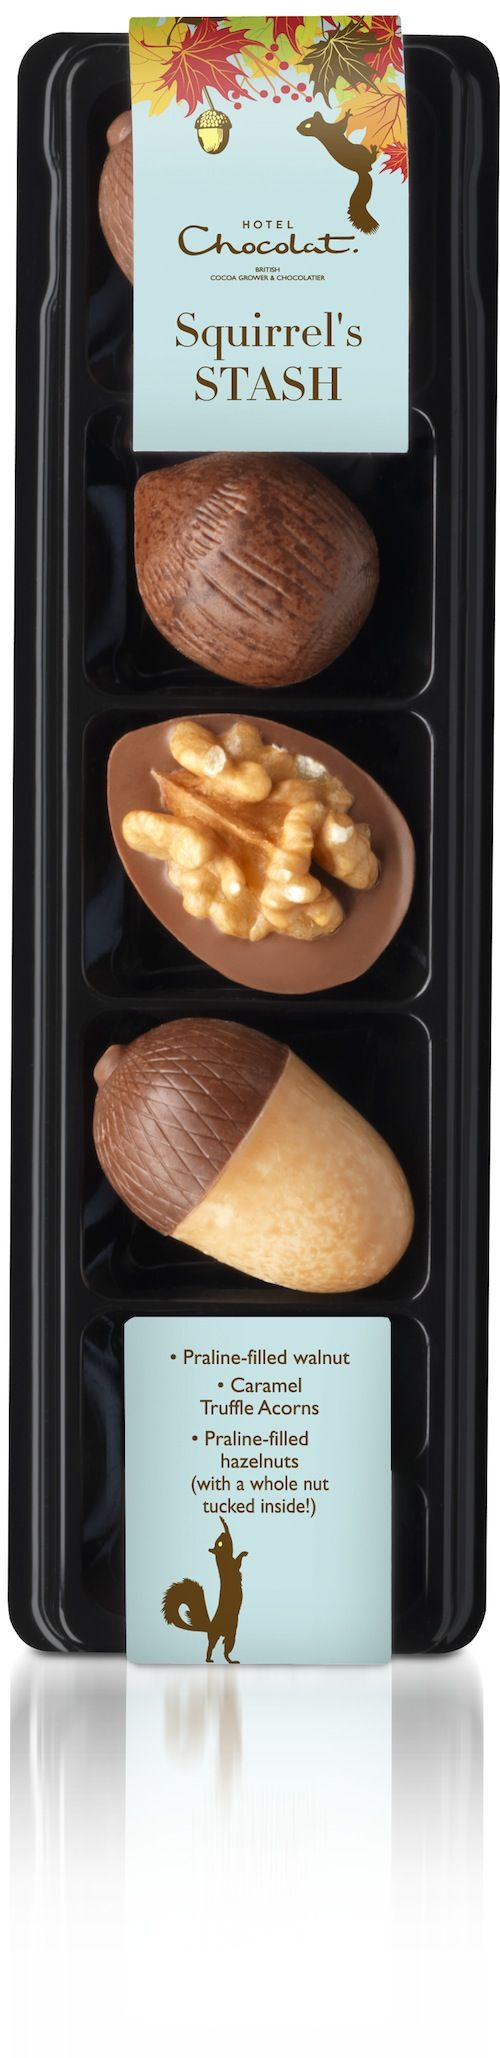 New Autumn Products from Hotel Chocolat They are really quirky with their designs. Big brand!